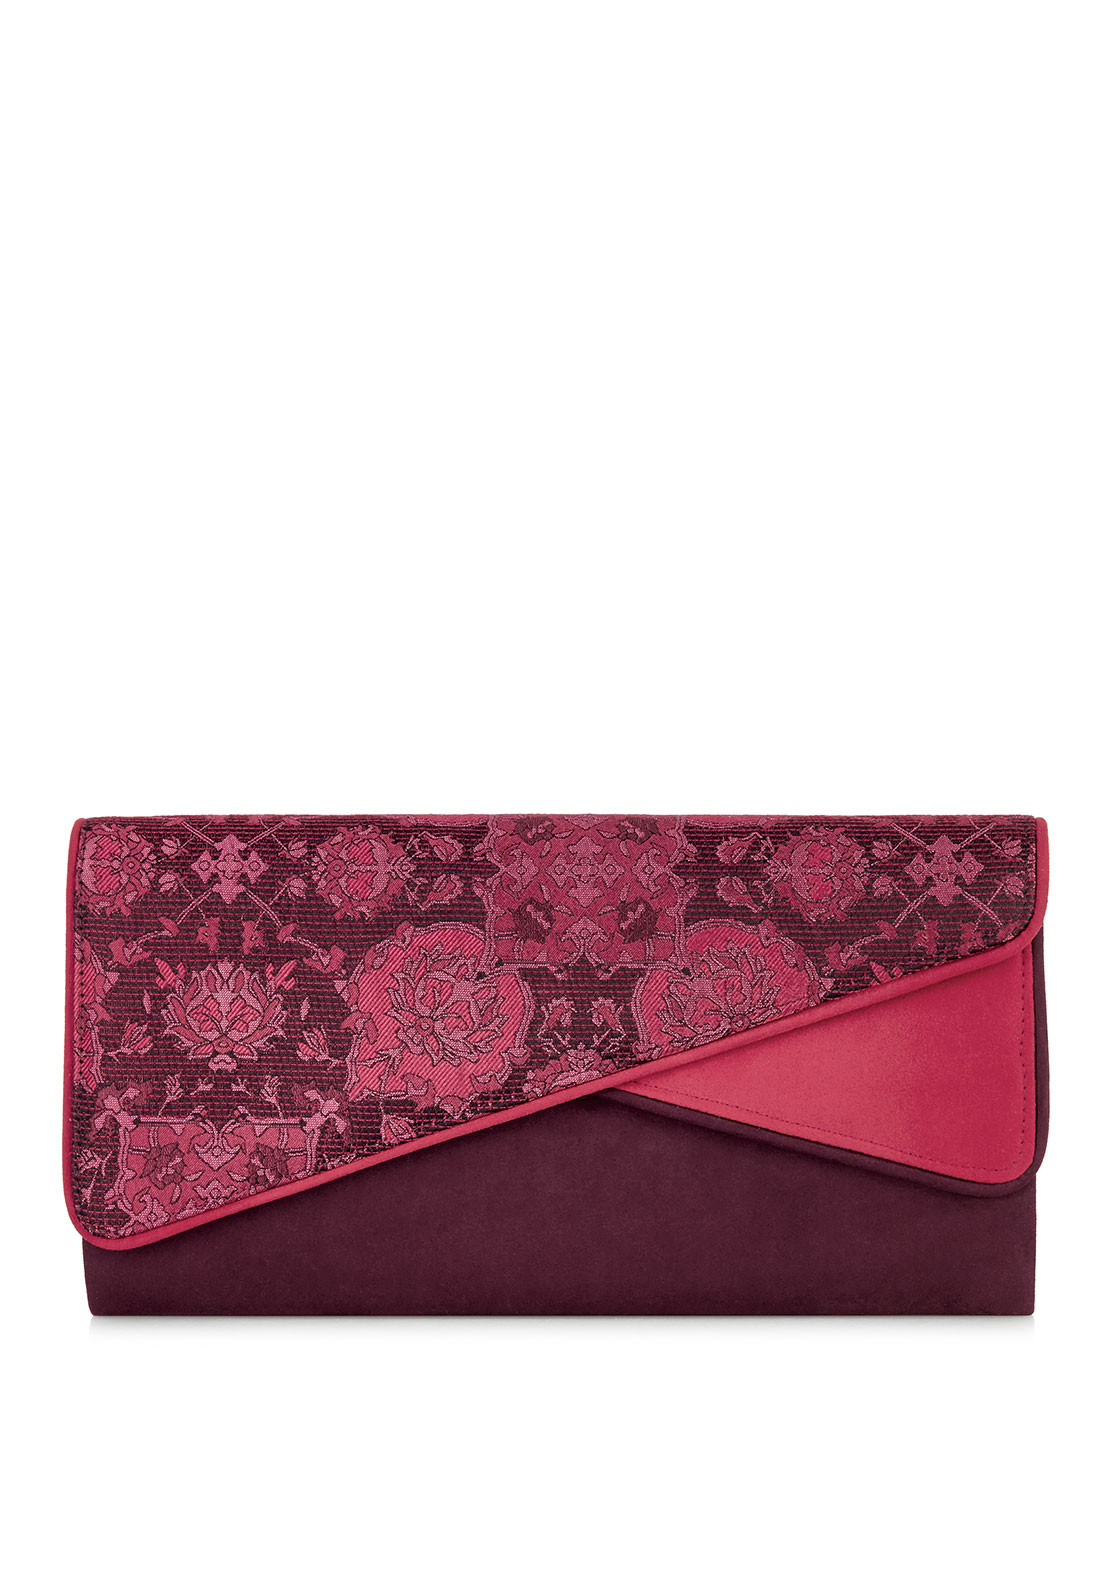 Ruby Shoo Sydney Flap Clutch Bag, Wine